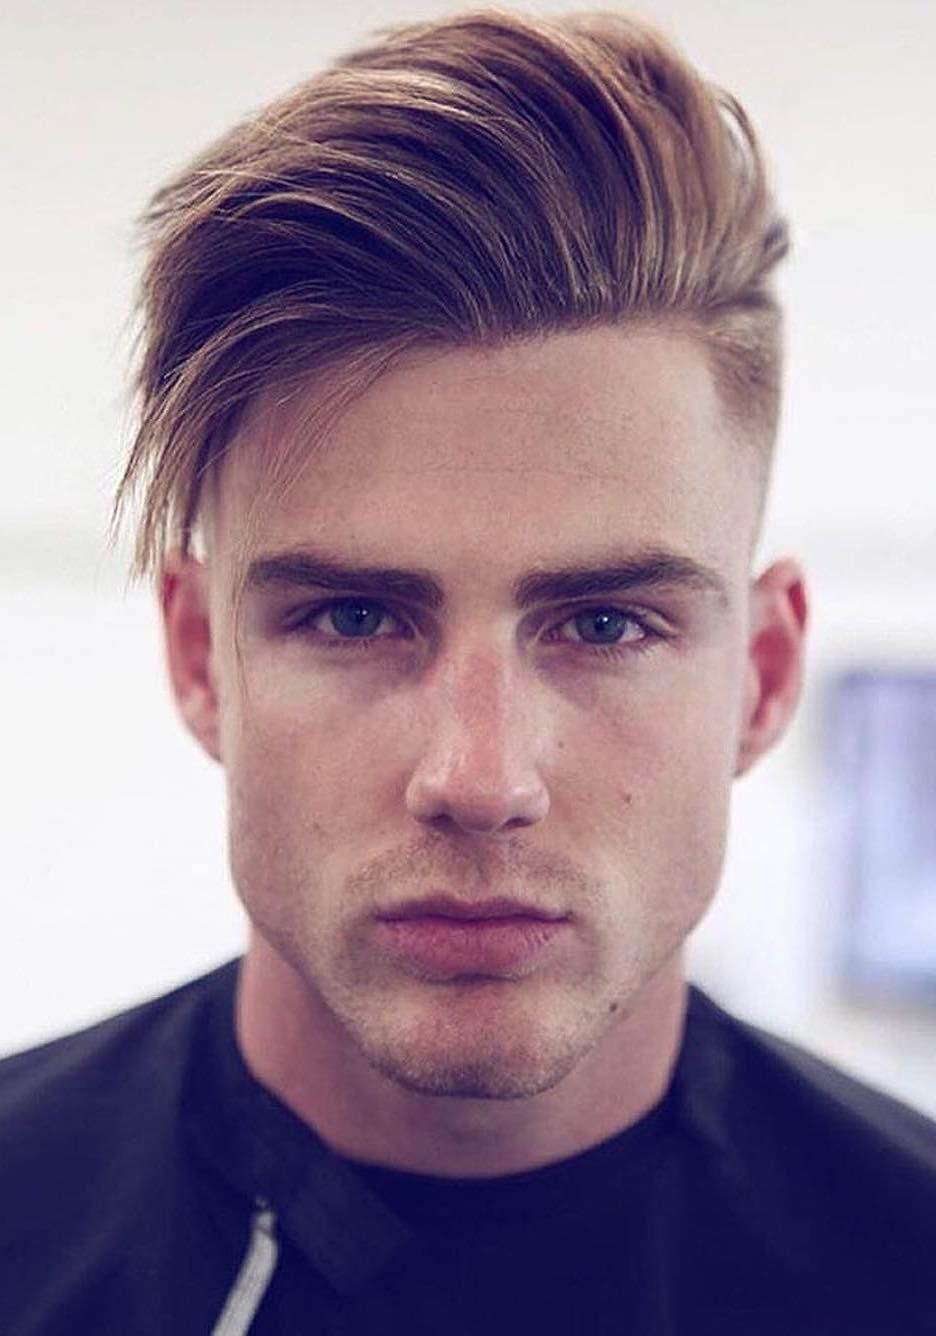 20 Fashionably Elegant Side Swept Undercut Variations Cool Hairstyles For Men Undercut Hairstyles Men Haircut Styles